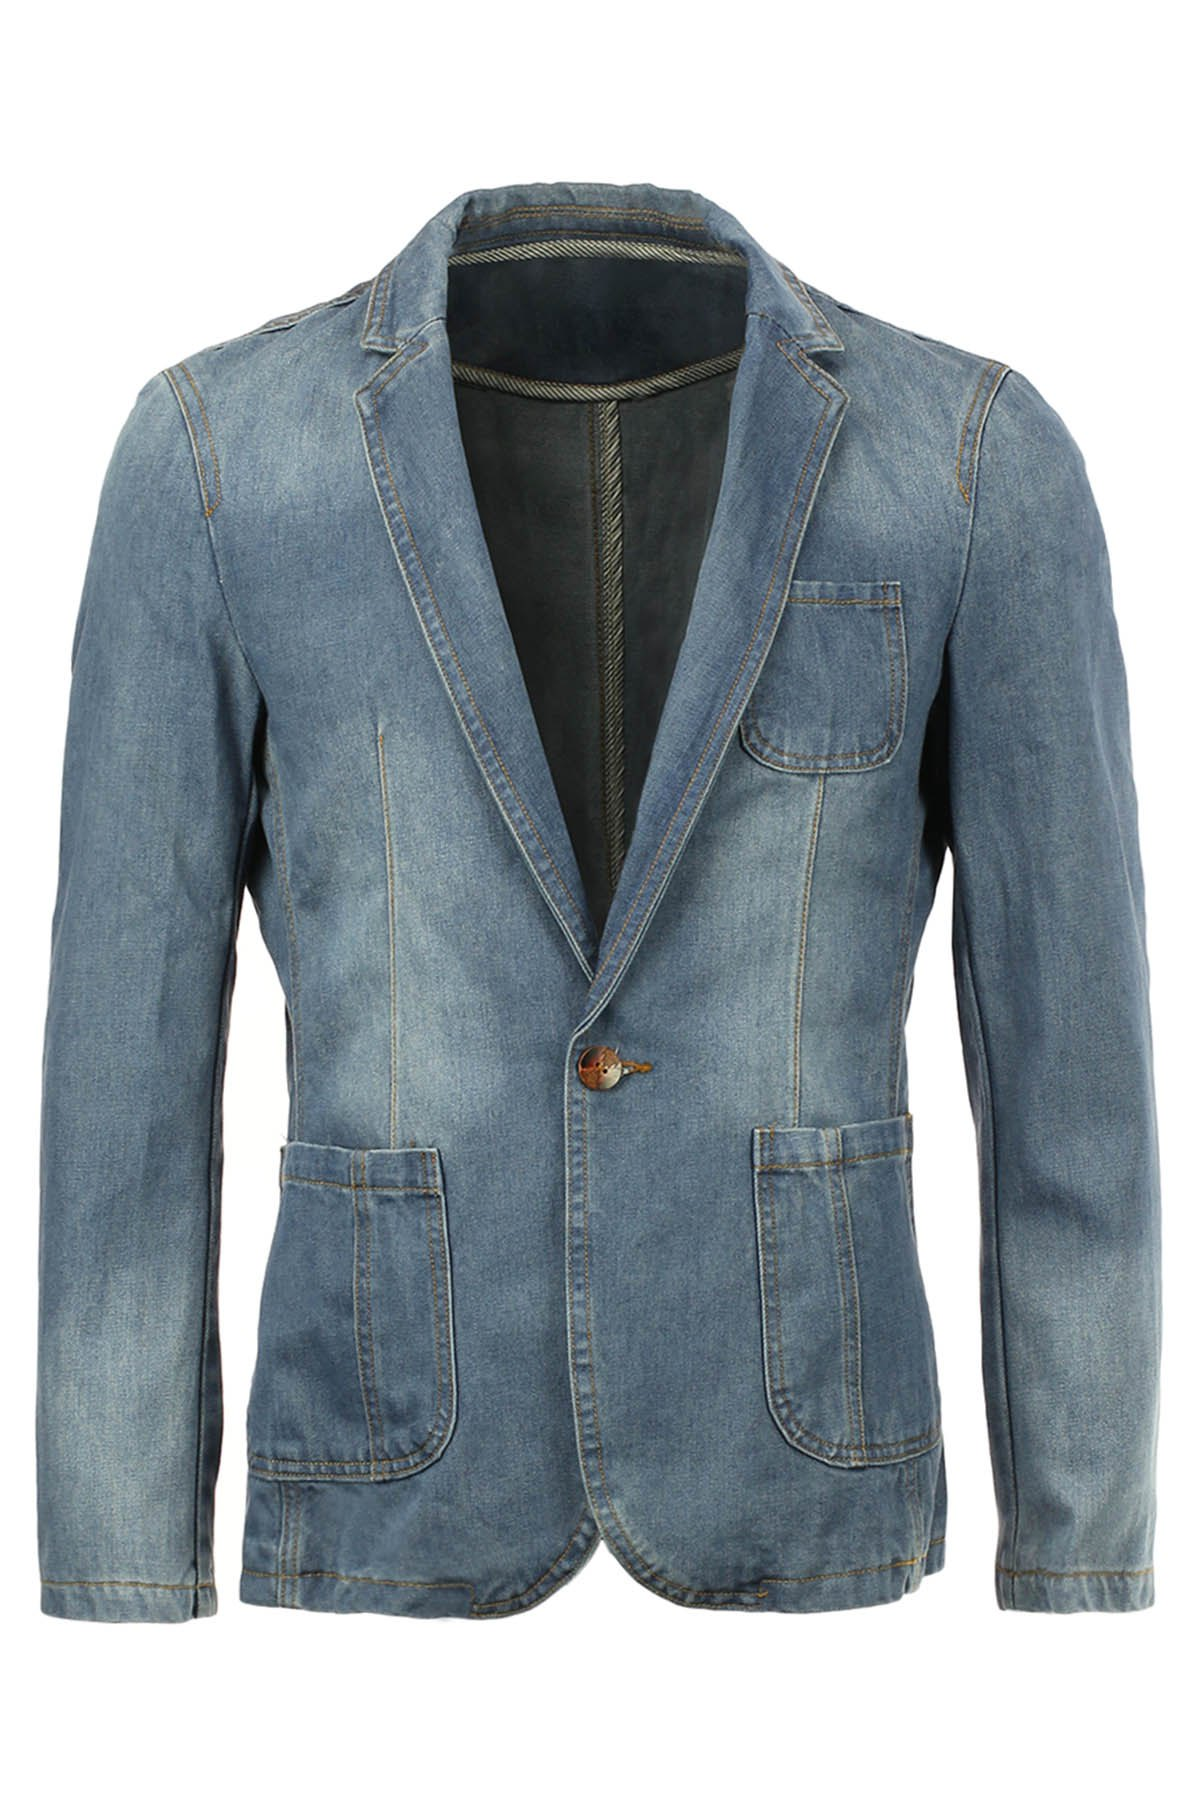 Lapel Single-Breasted Slimming Bleach Wash Pocket Long Sleeve Men's Denim Jacket - M DEEP BLUE